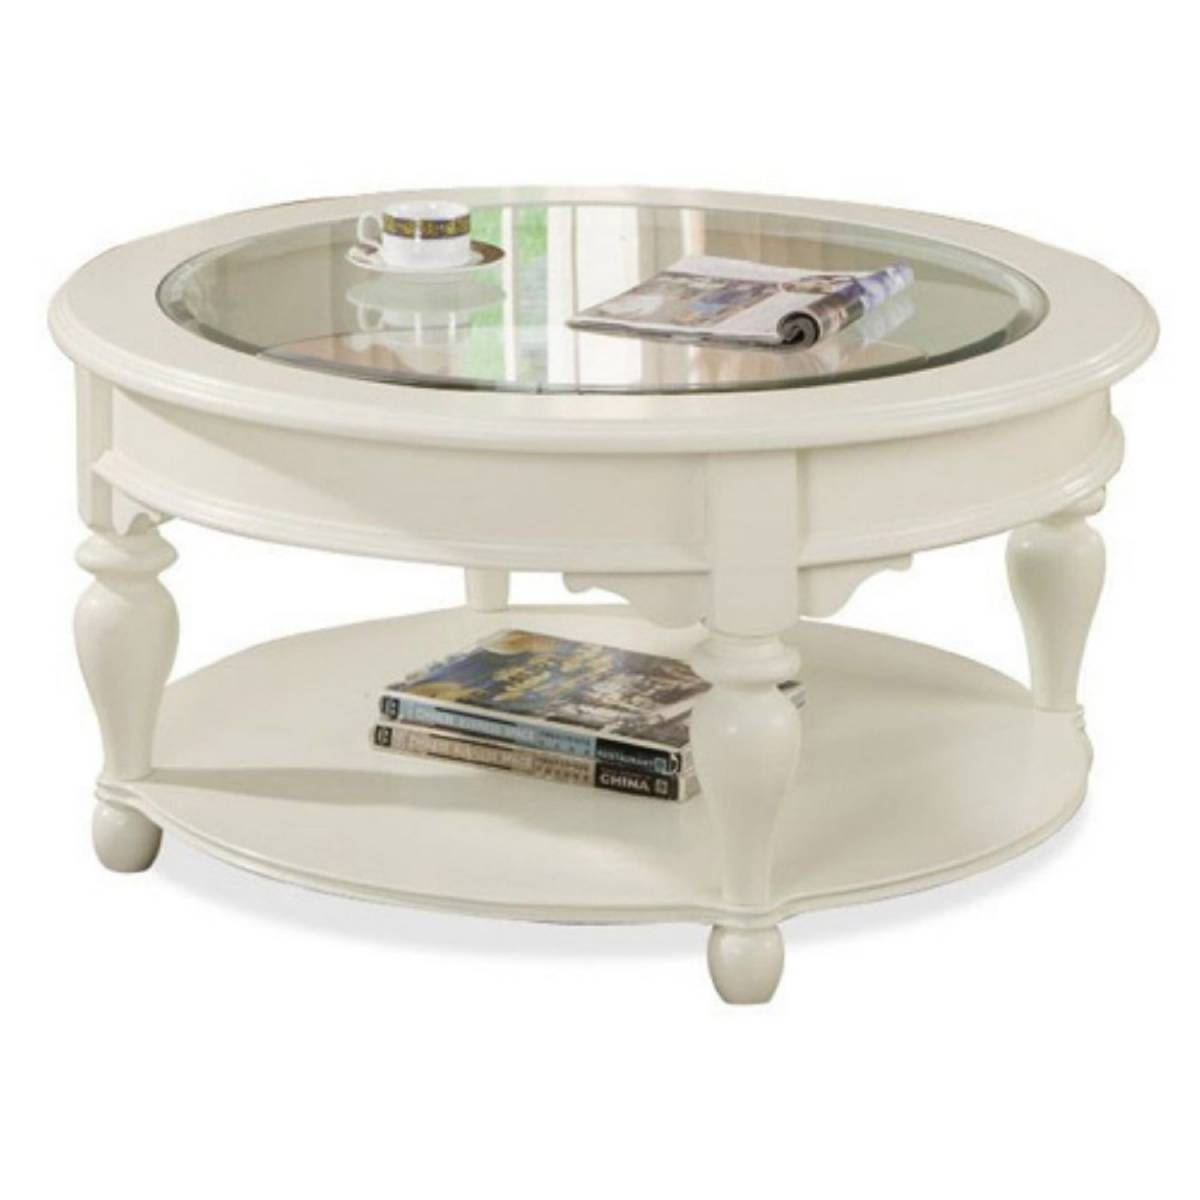 White Coffee Tables With Storage intended for Ethnic Coffee Tables (Image 29 of 30)